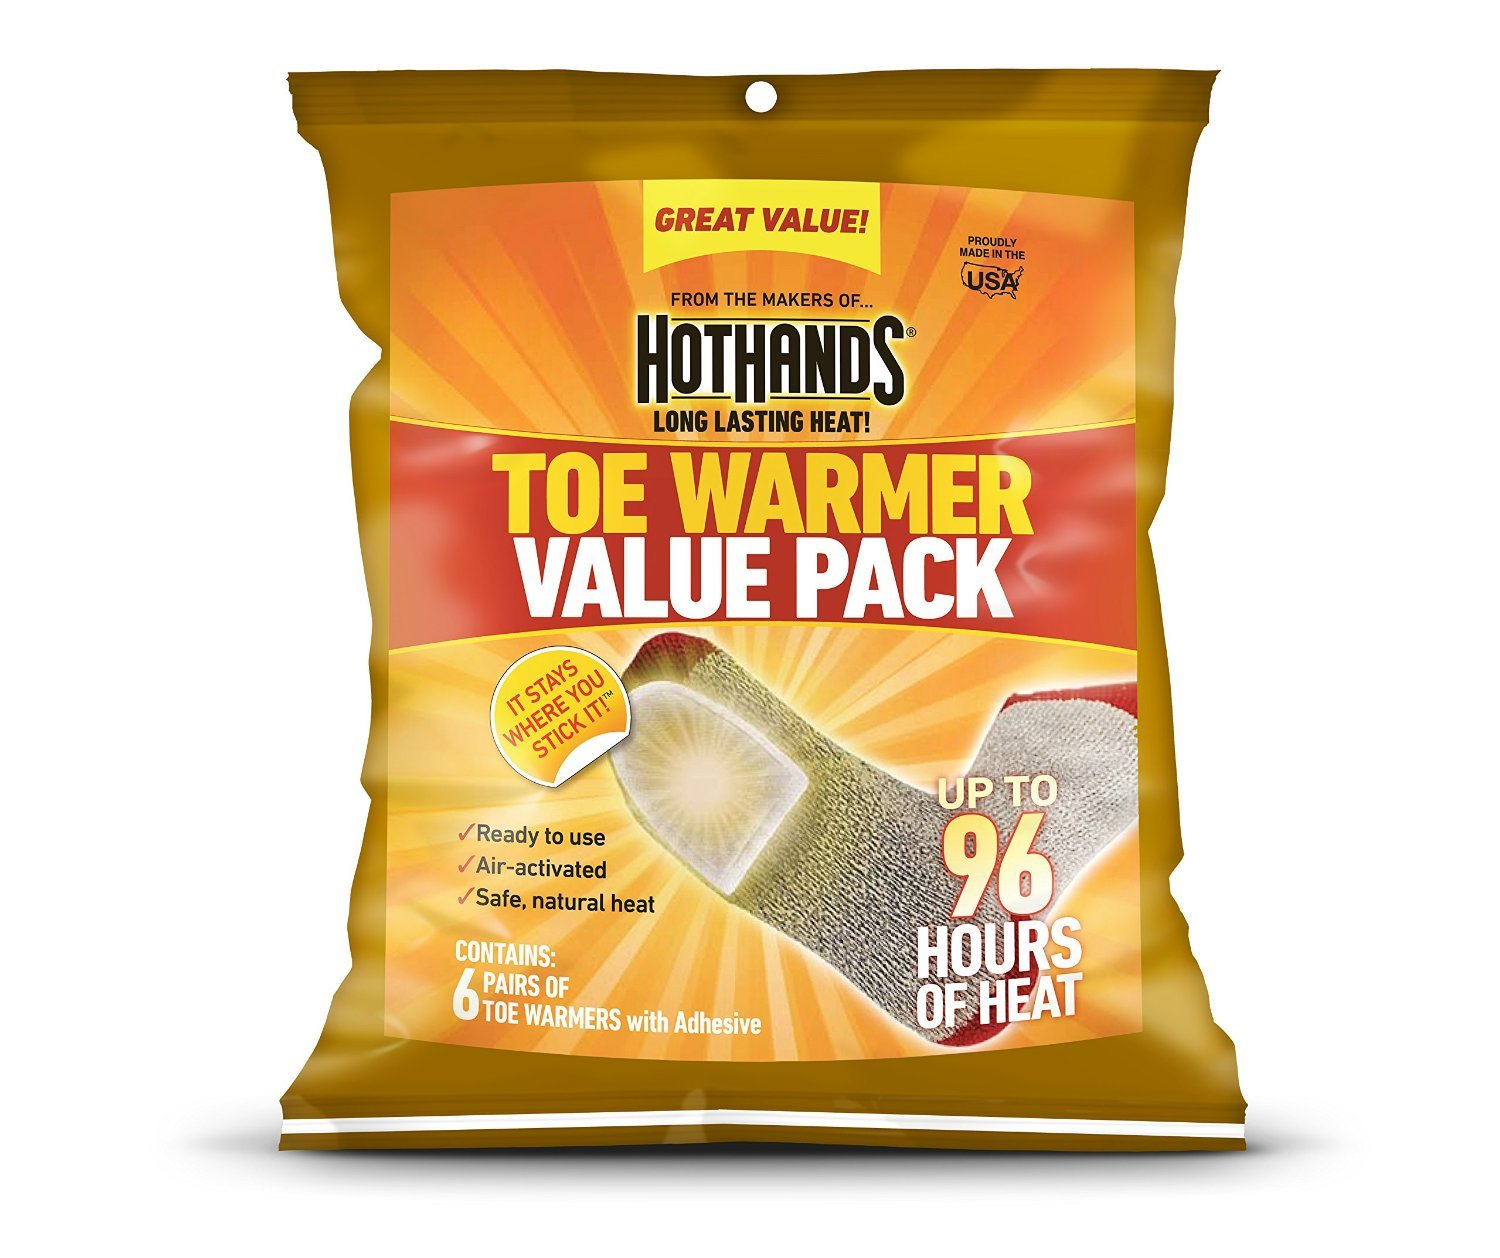 HotHands Adhesive Toe Warmer 72 Pair Value Pack